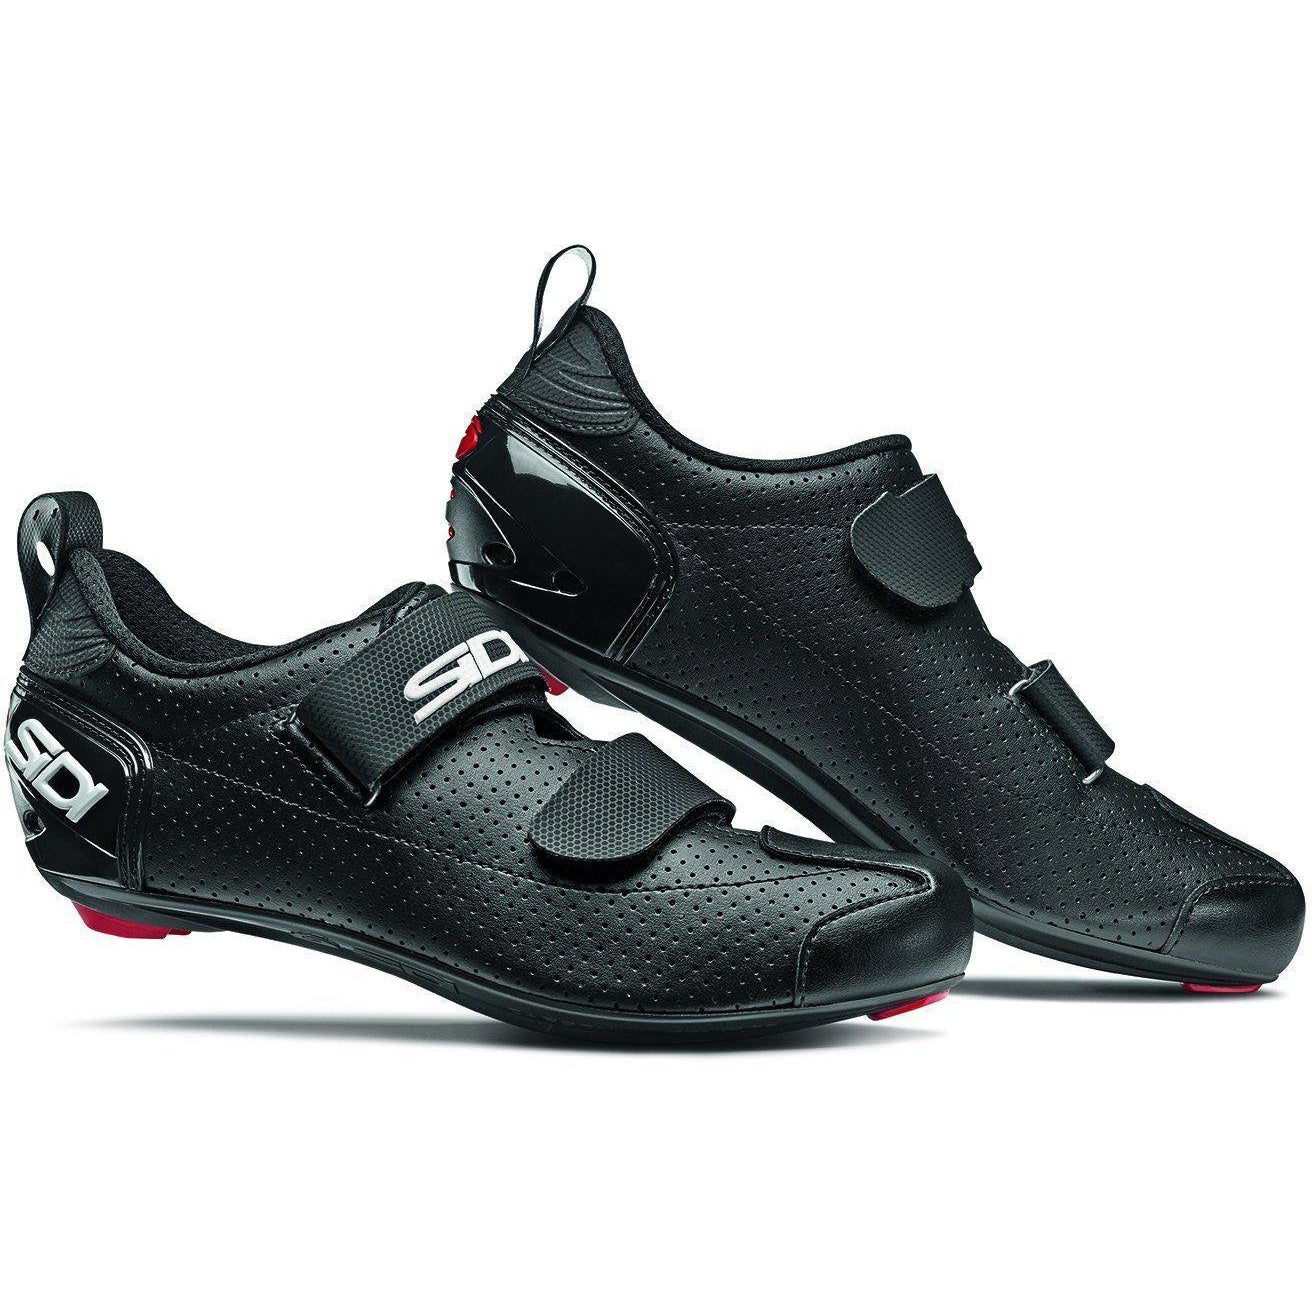 SIDI-Sidi T-5 Air Triathlon Shoes-38-Black/Black-SIT5AIRNENE38-saddleback-elite-performance-cycling